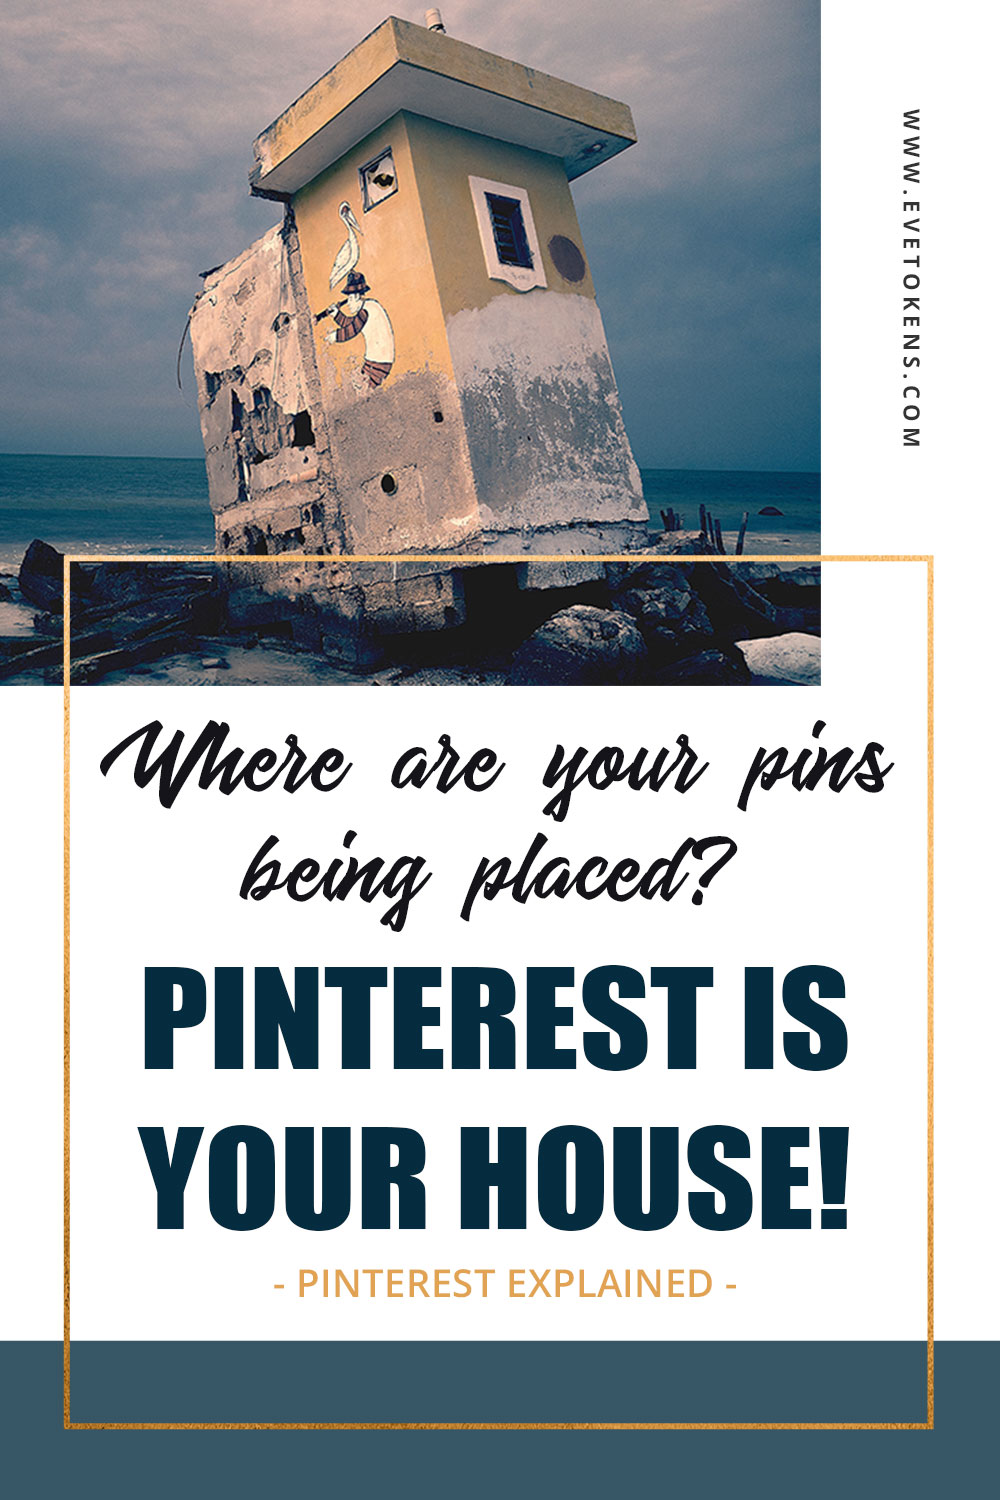 Pinterest explained - what is Pinterest, how does a Pinterest account work, in an easy to understand way!